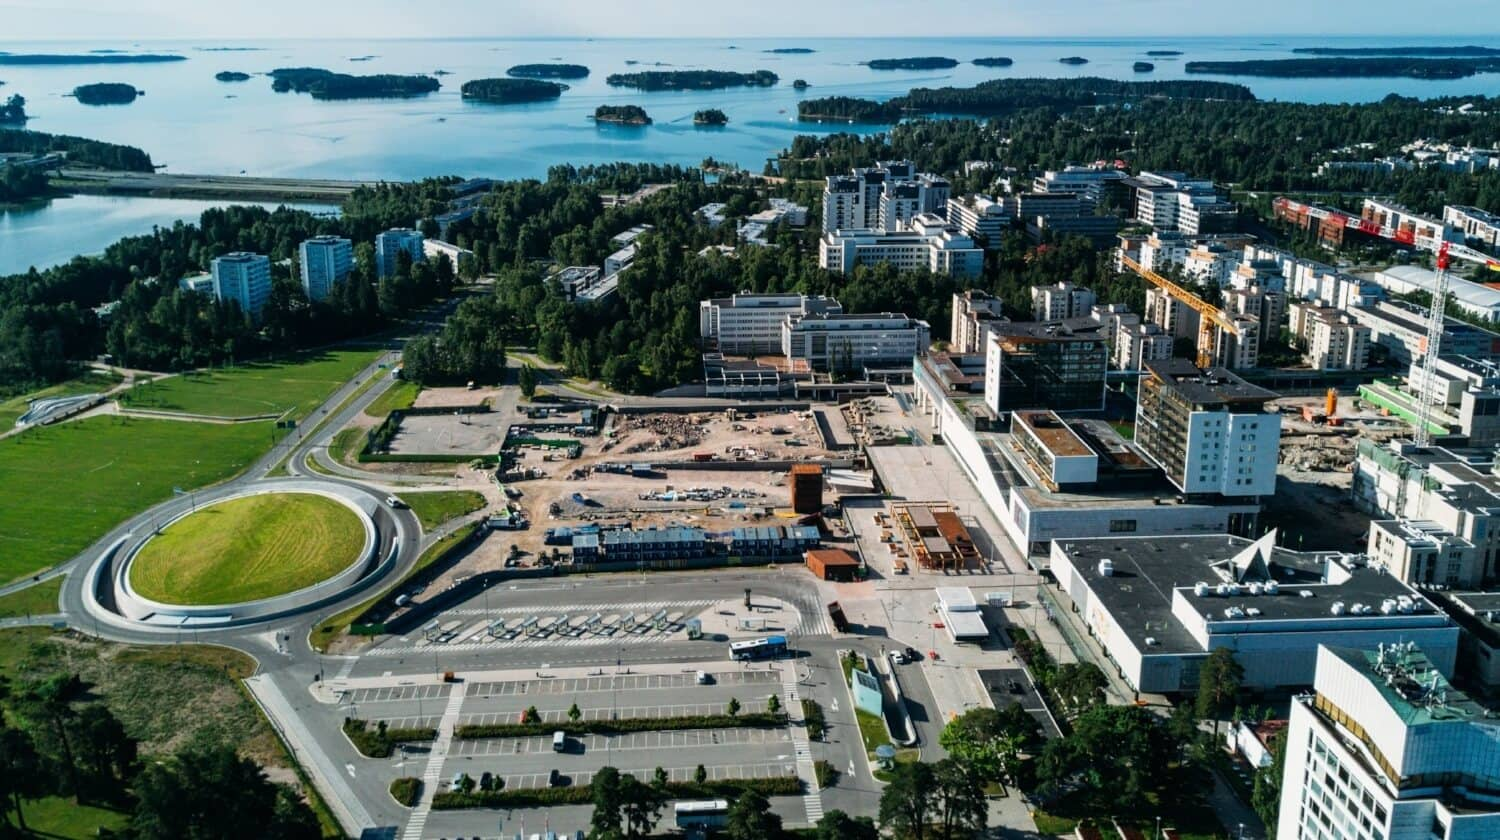 aerial-view-of-espoo-city-2.jpg